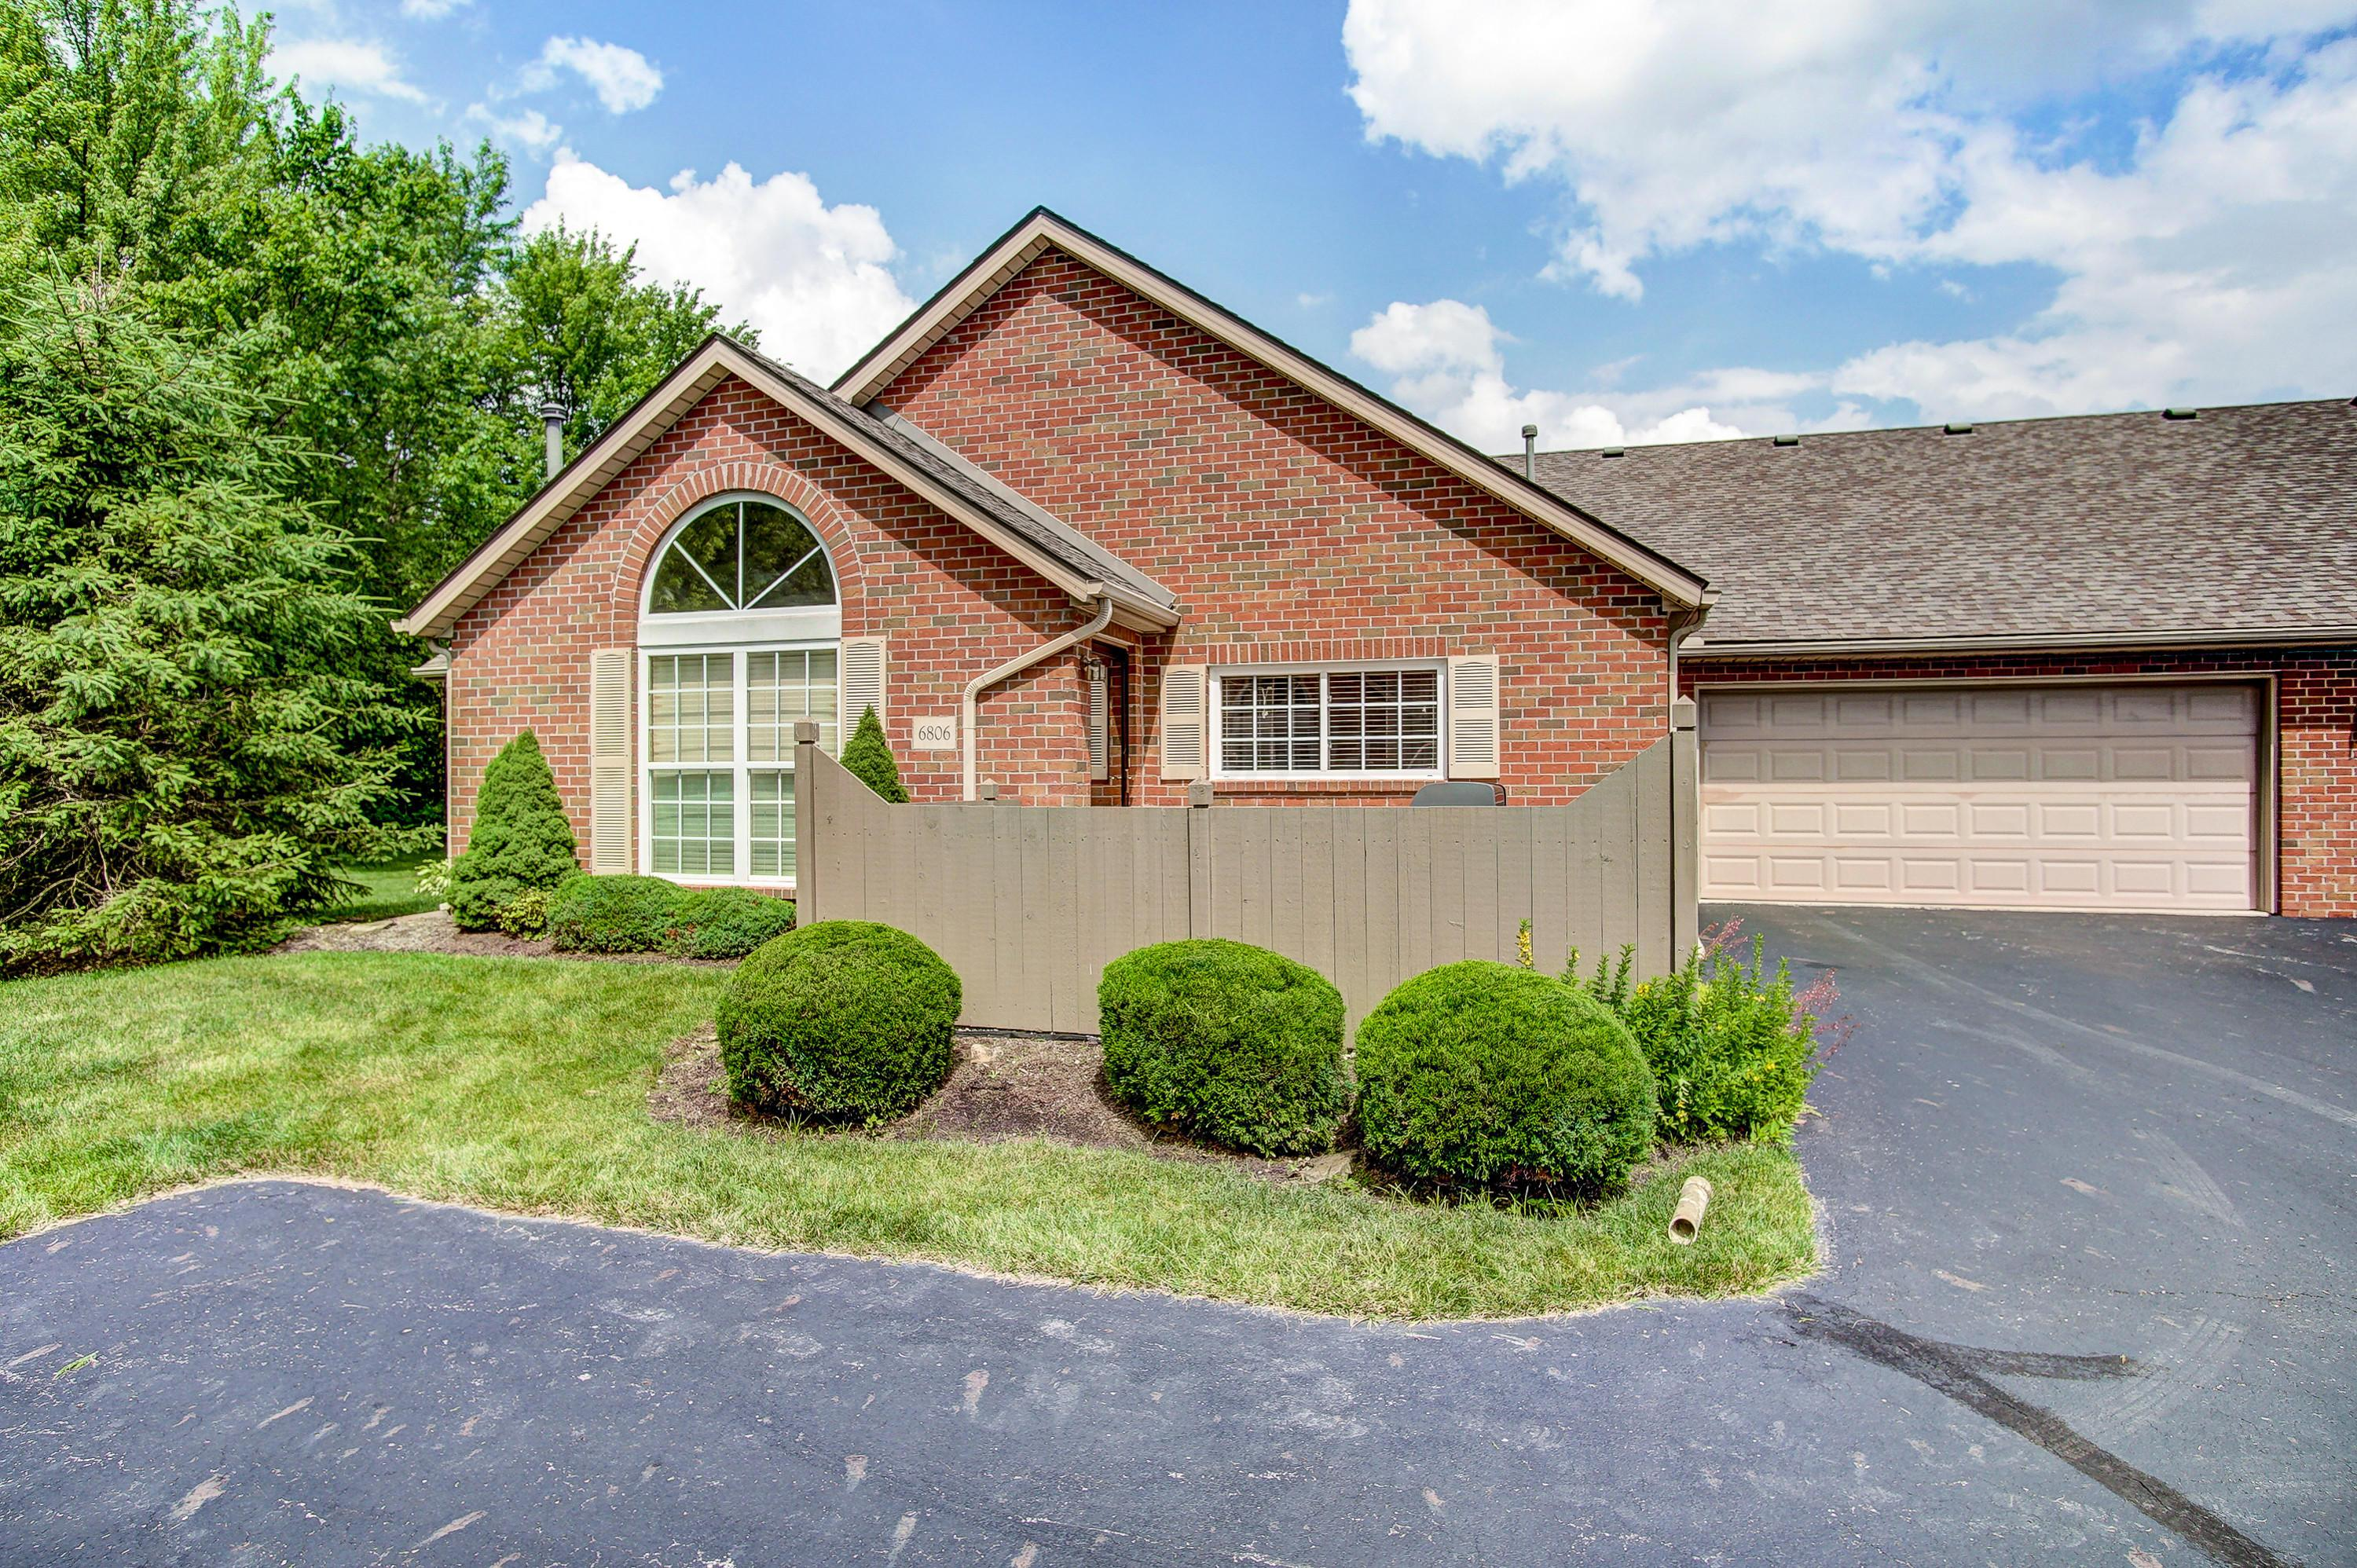 Photo of 6806 Newrock Drive, New Albany, OH 43054